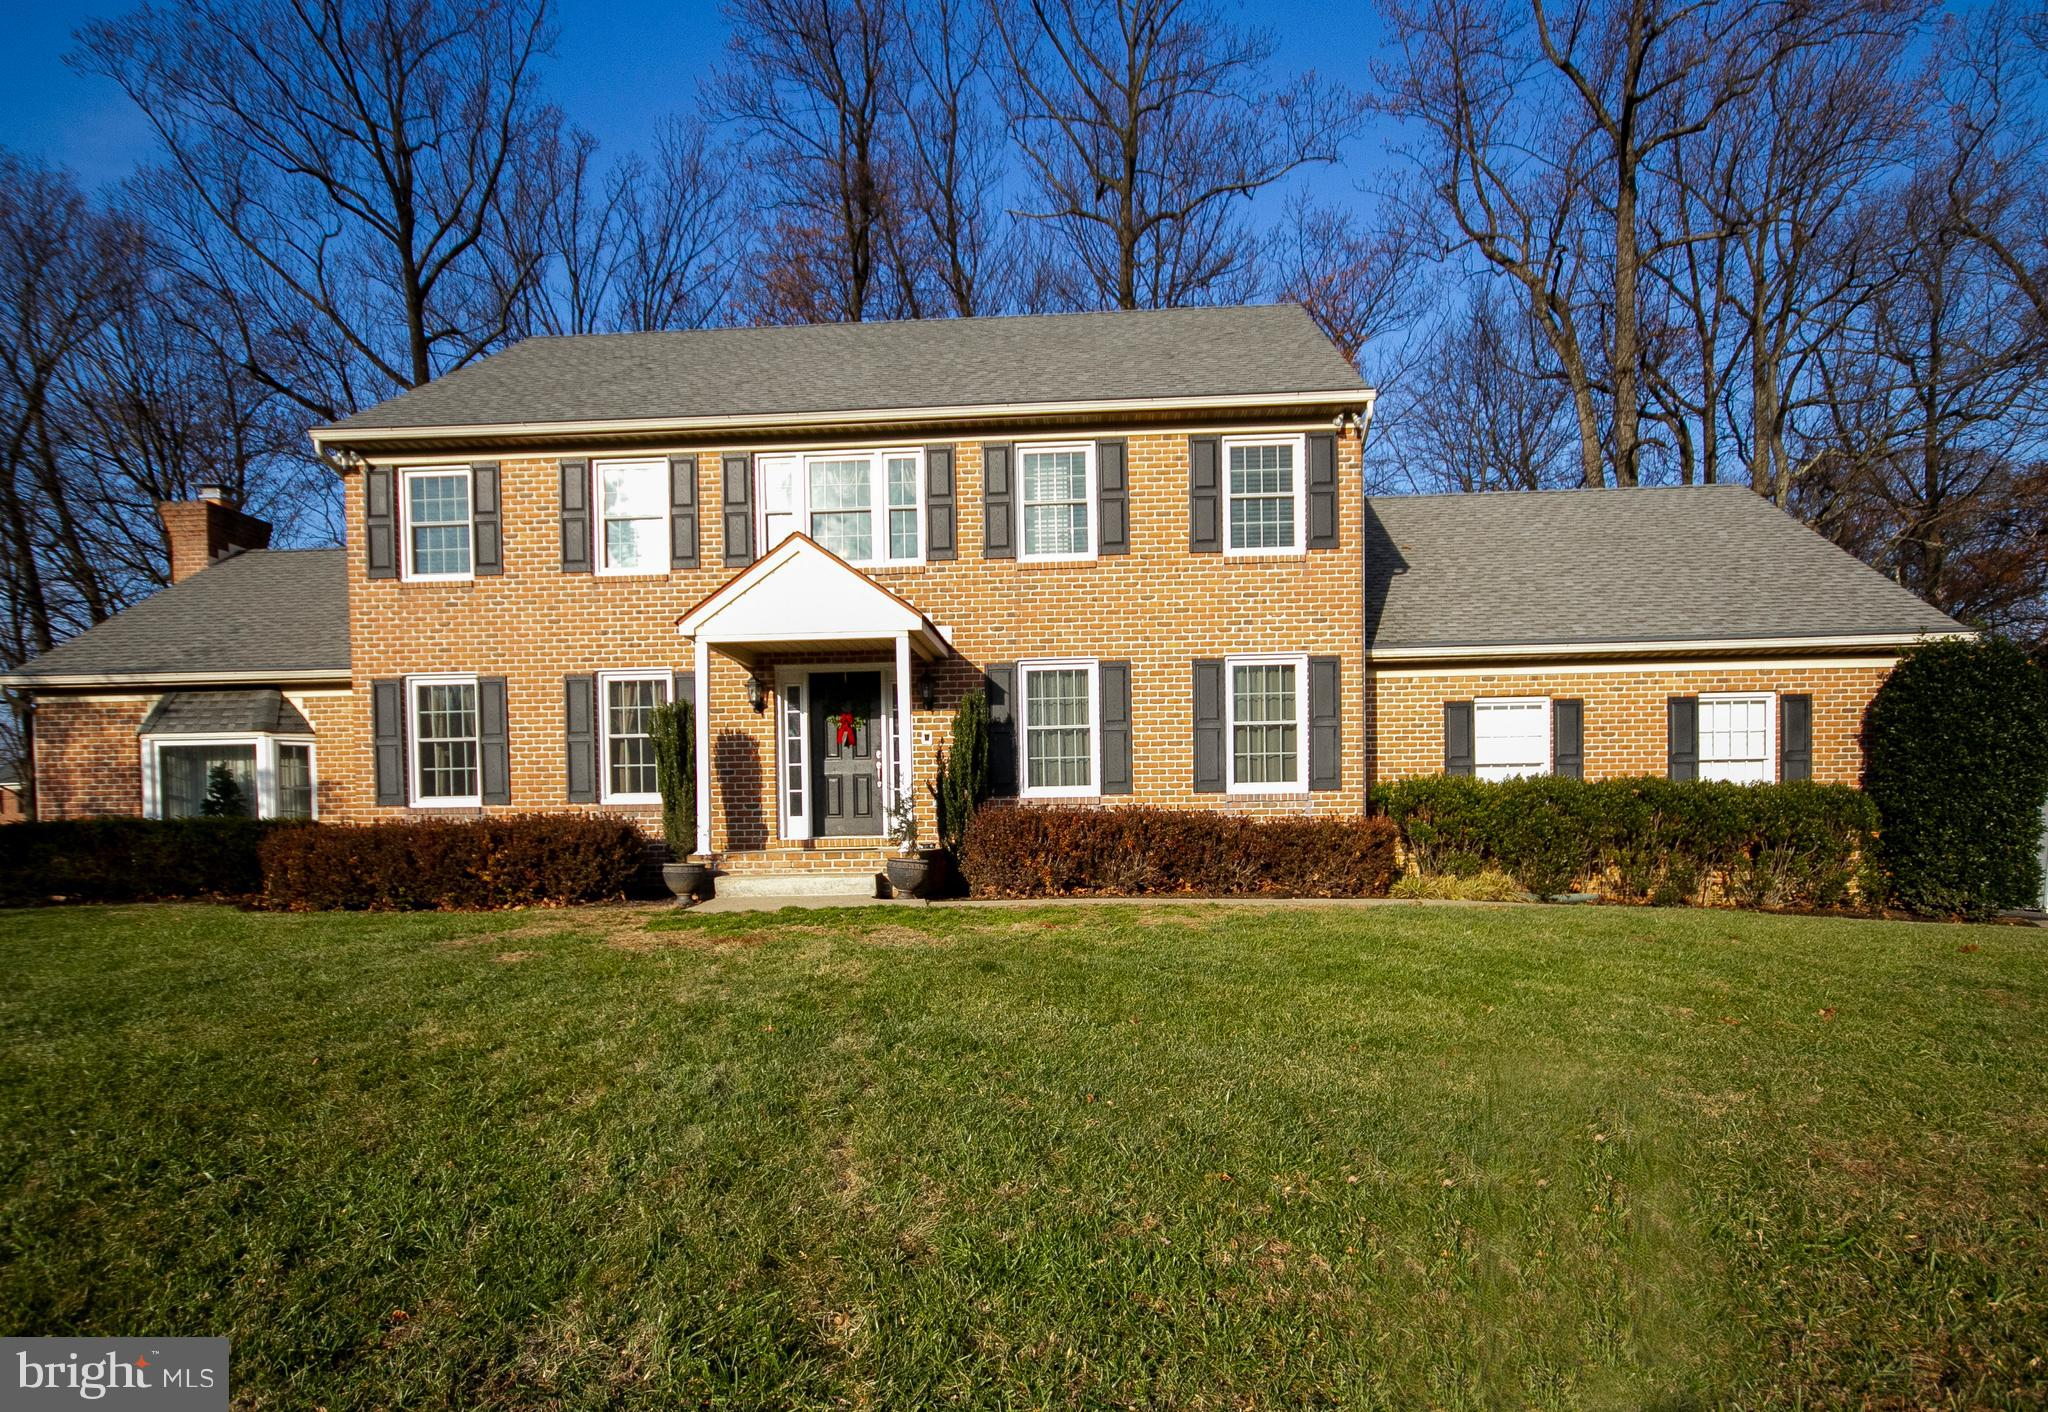 NEWLY LISTED! Rarely available in Steeple Chase Manor. Impeccably maintained with updates galore:  G